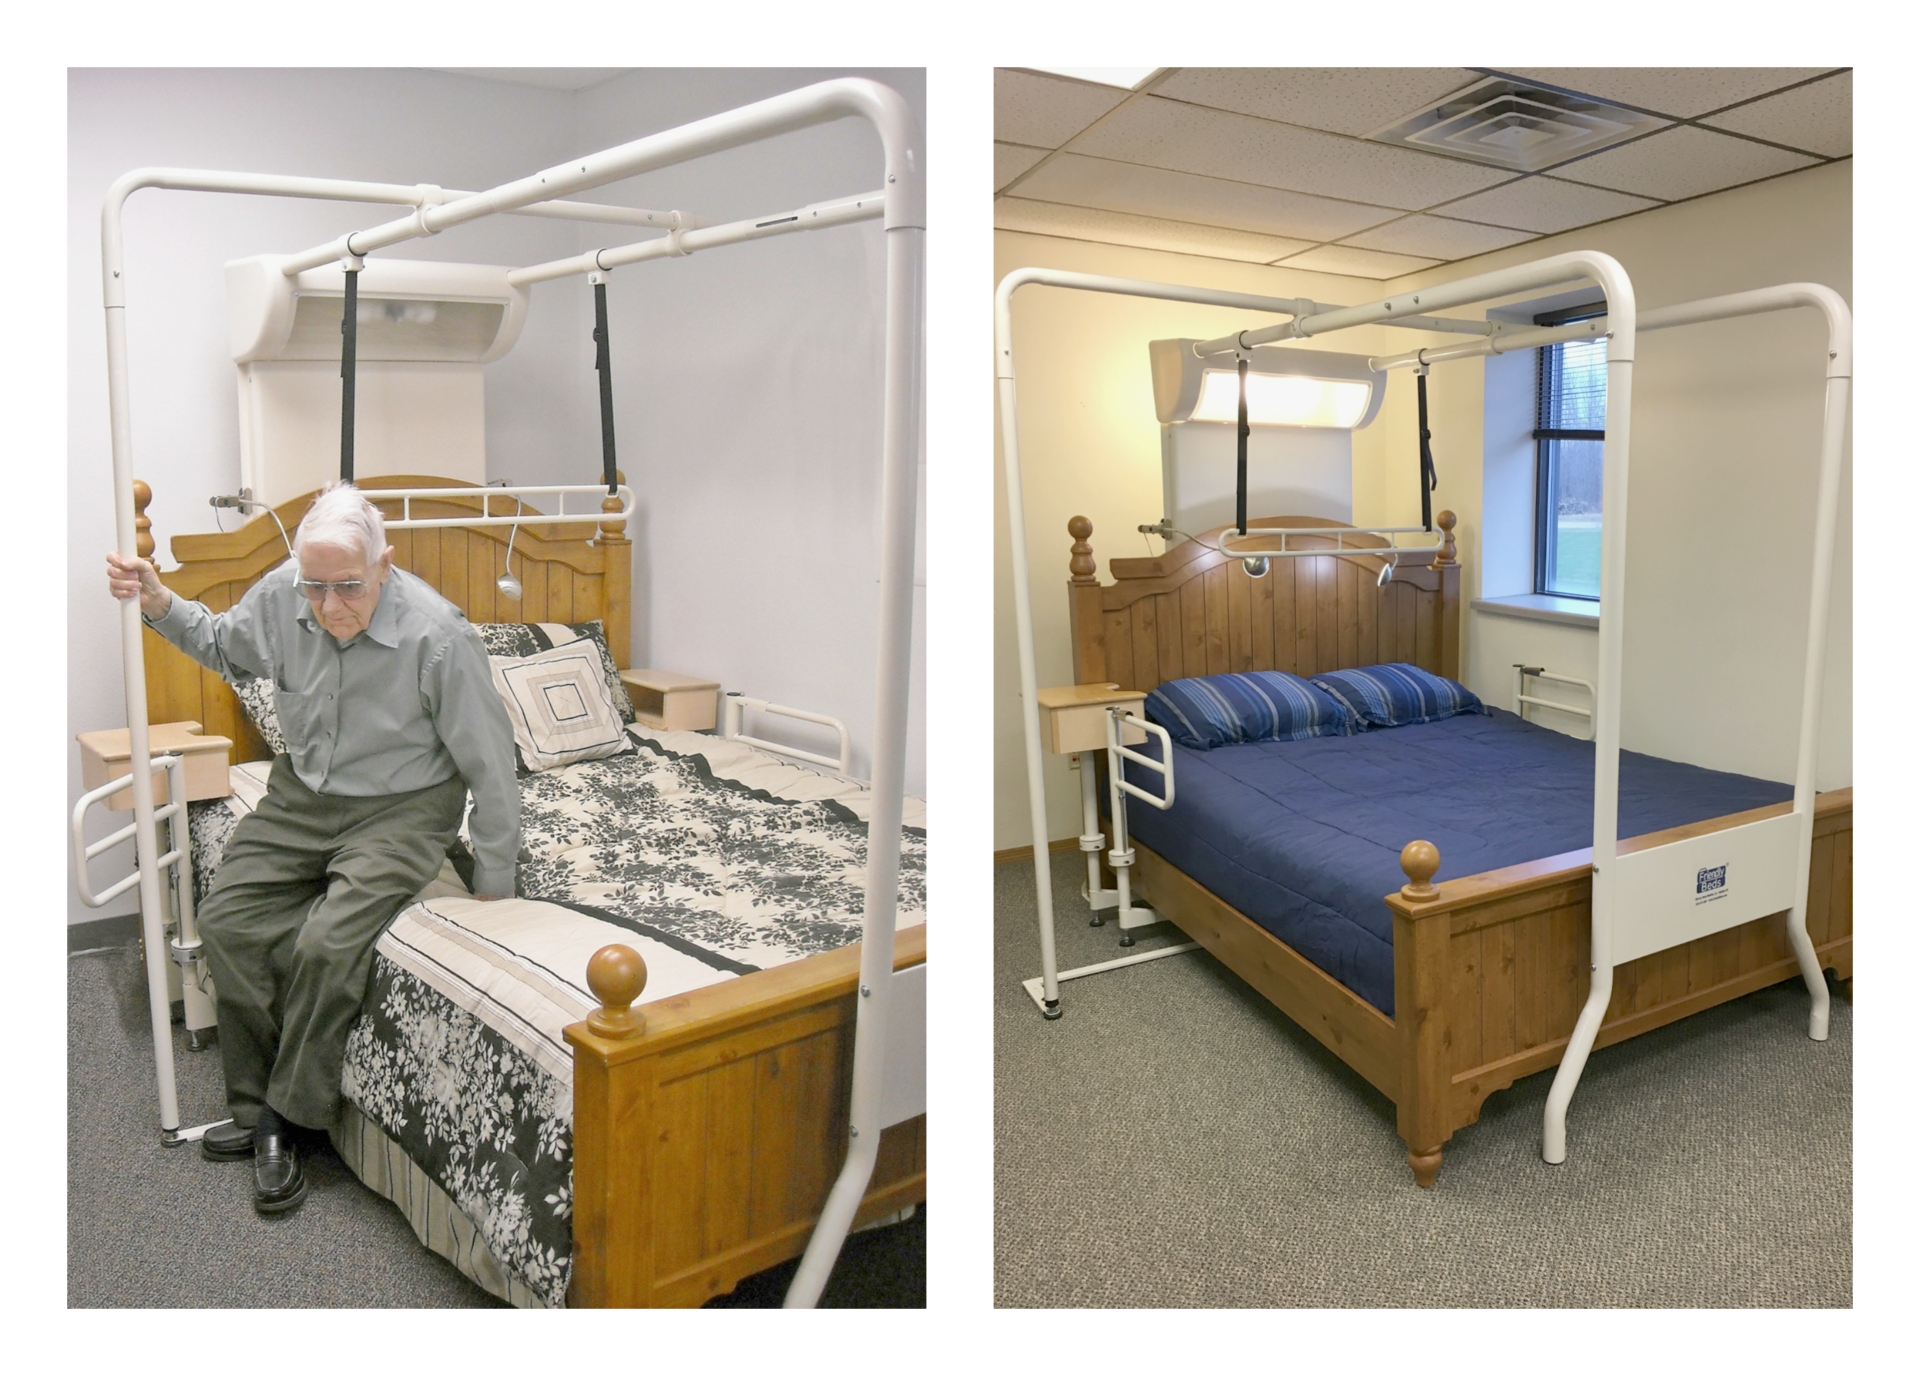 Bed Transfer Assistive Device